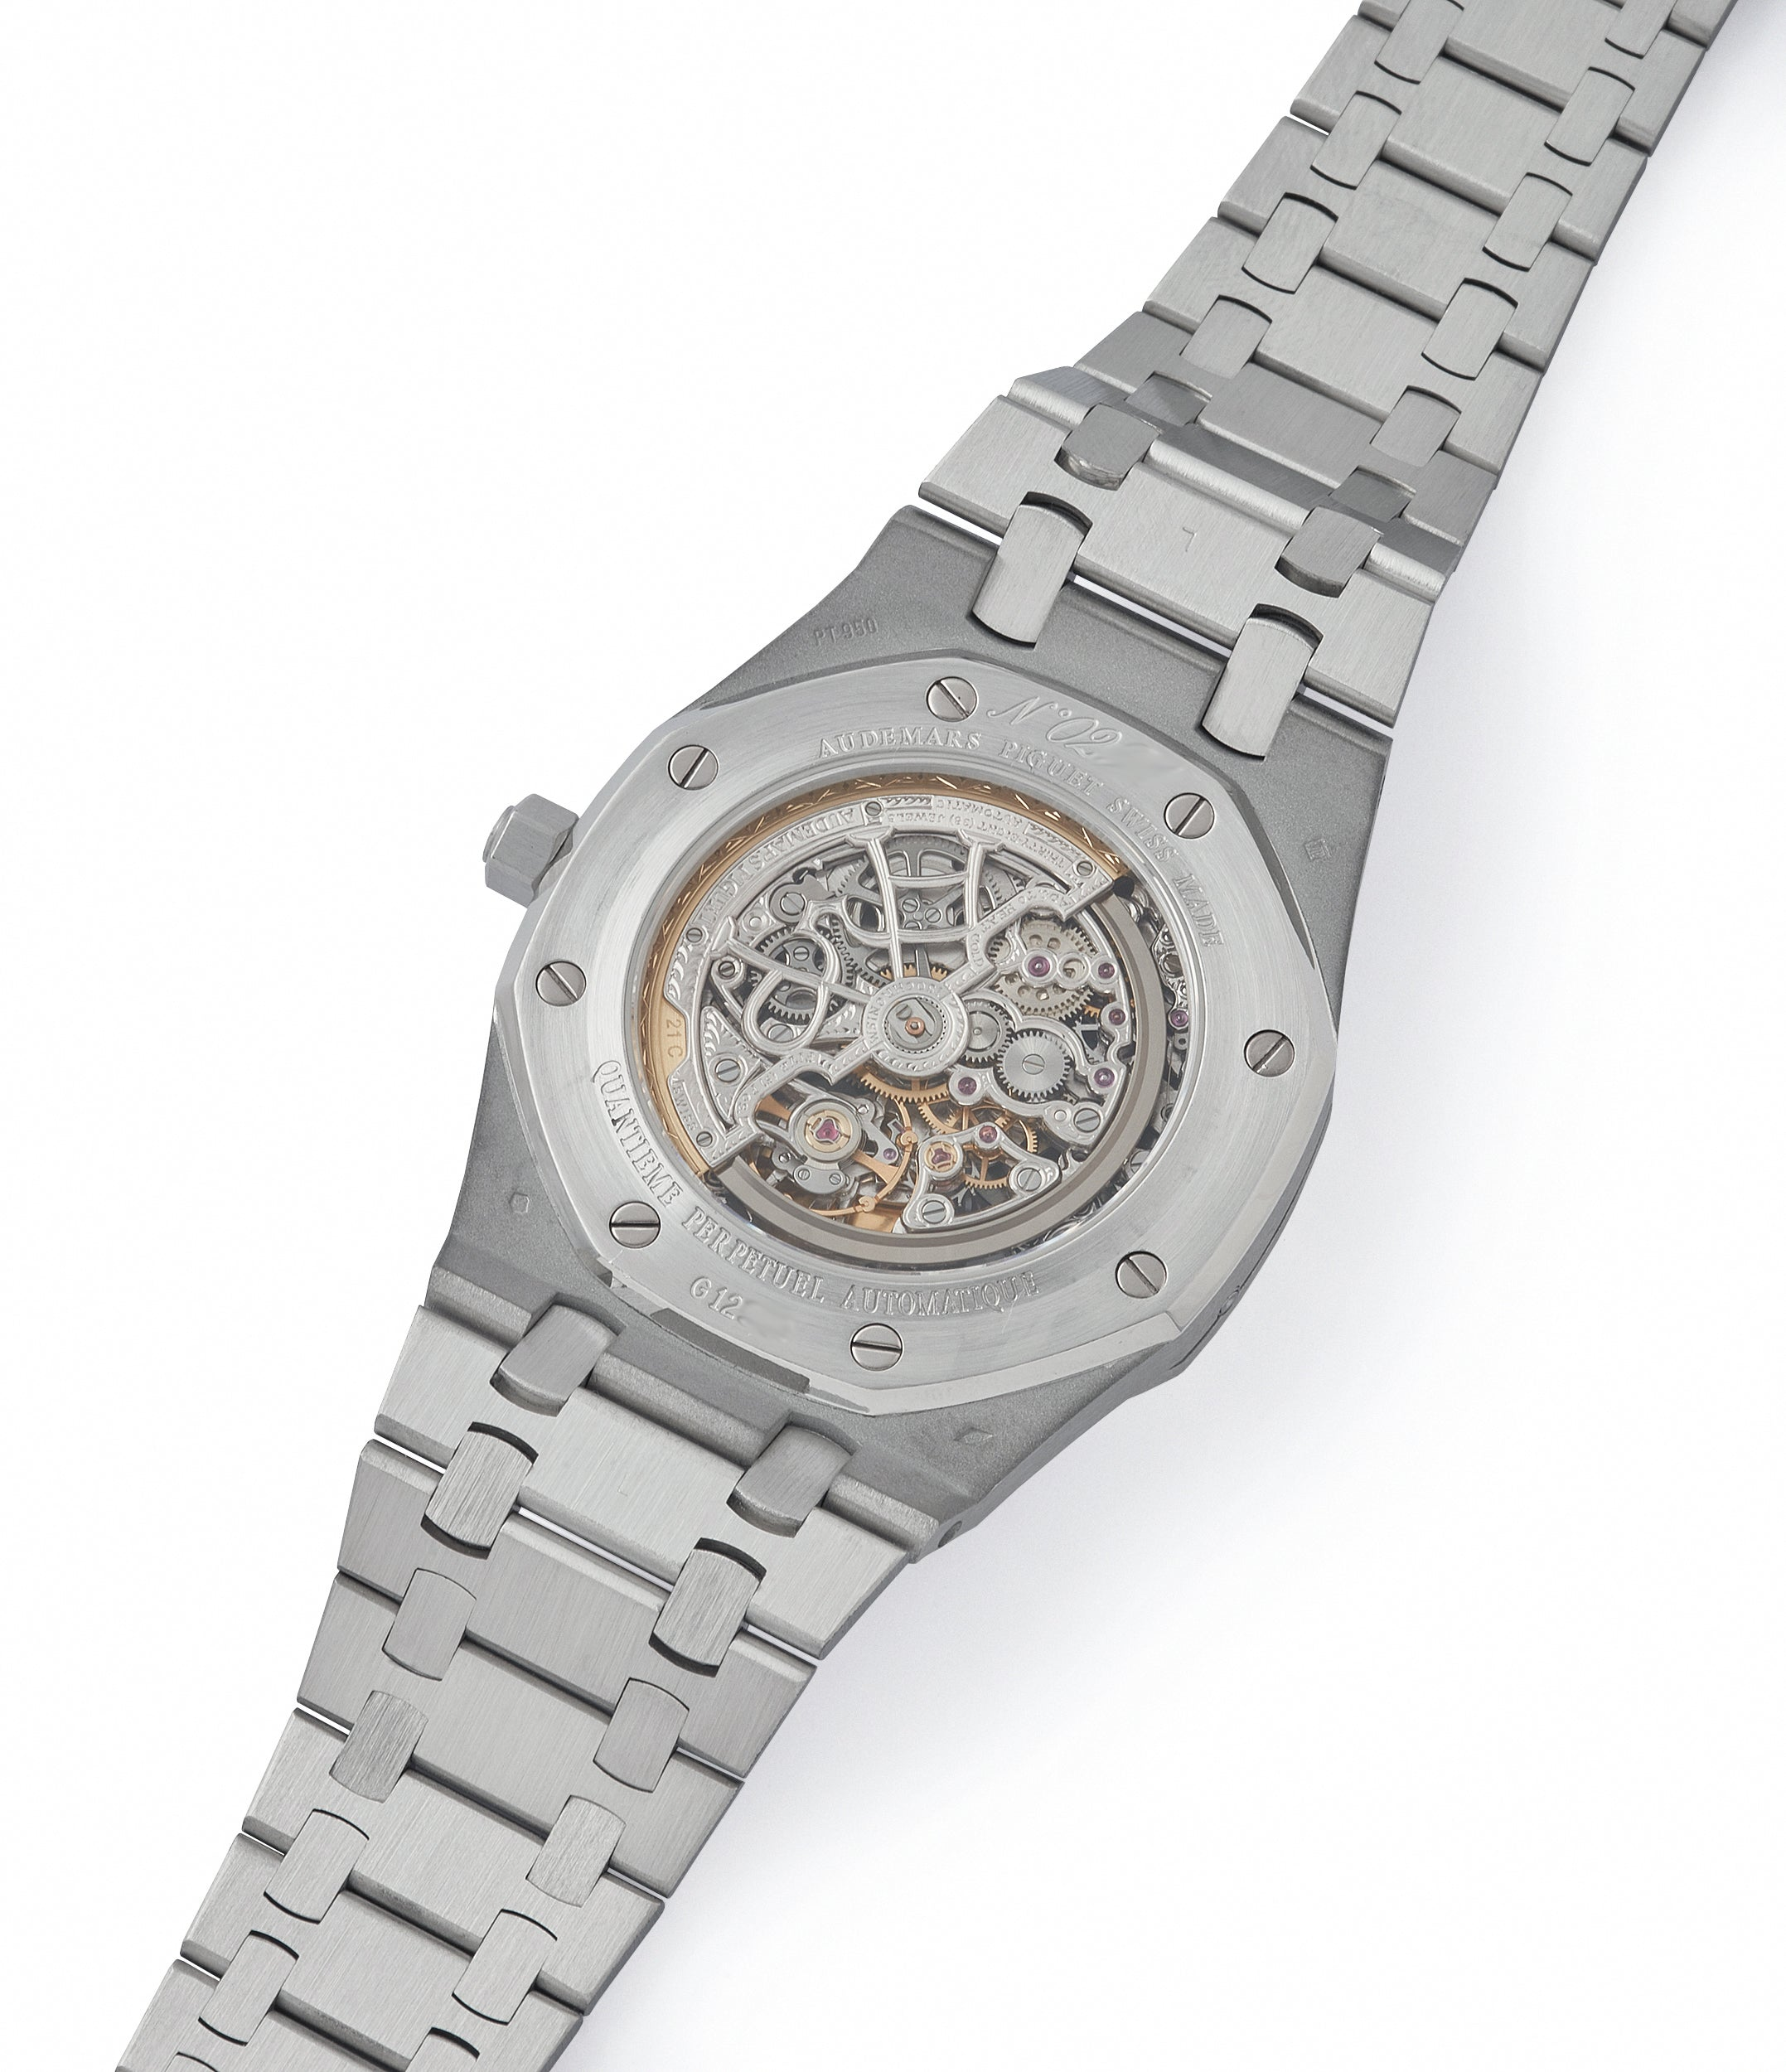 automatic Audemars Piguet Royal Oak perpetual calendar skeleton dial platinum full set pre-owned watch for sale online at A Collected Man London UK specialist of rare watches